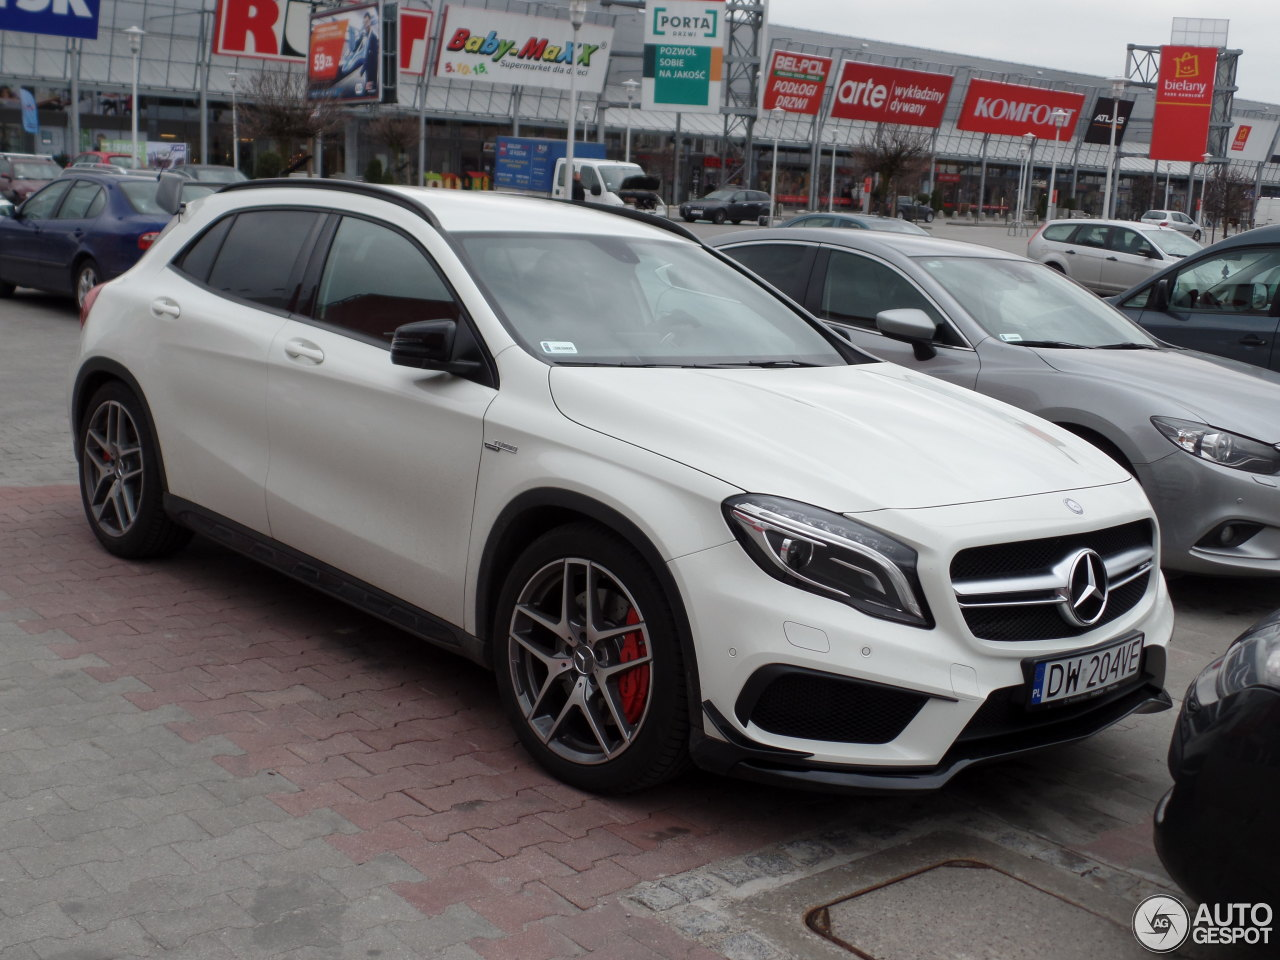 Mercedes benz gla 45 amg x156 8 april 2015 autogespot for Mercedes benz 2015 gla